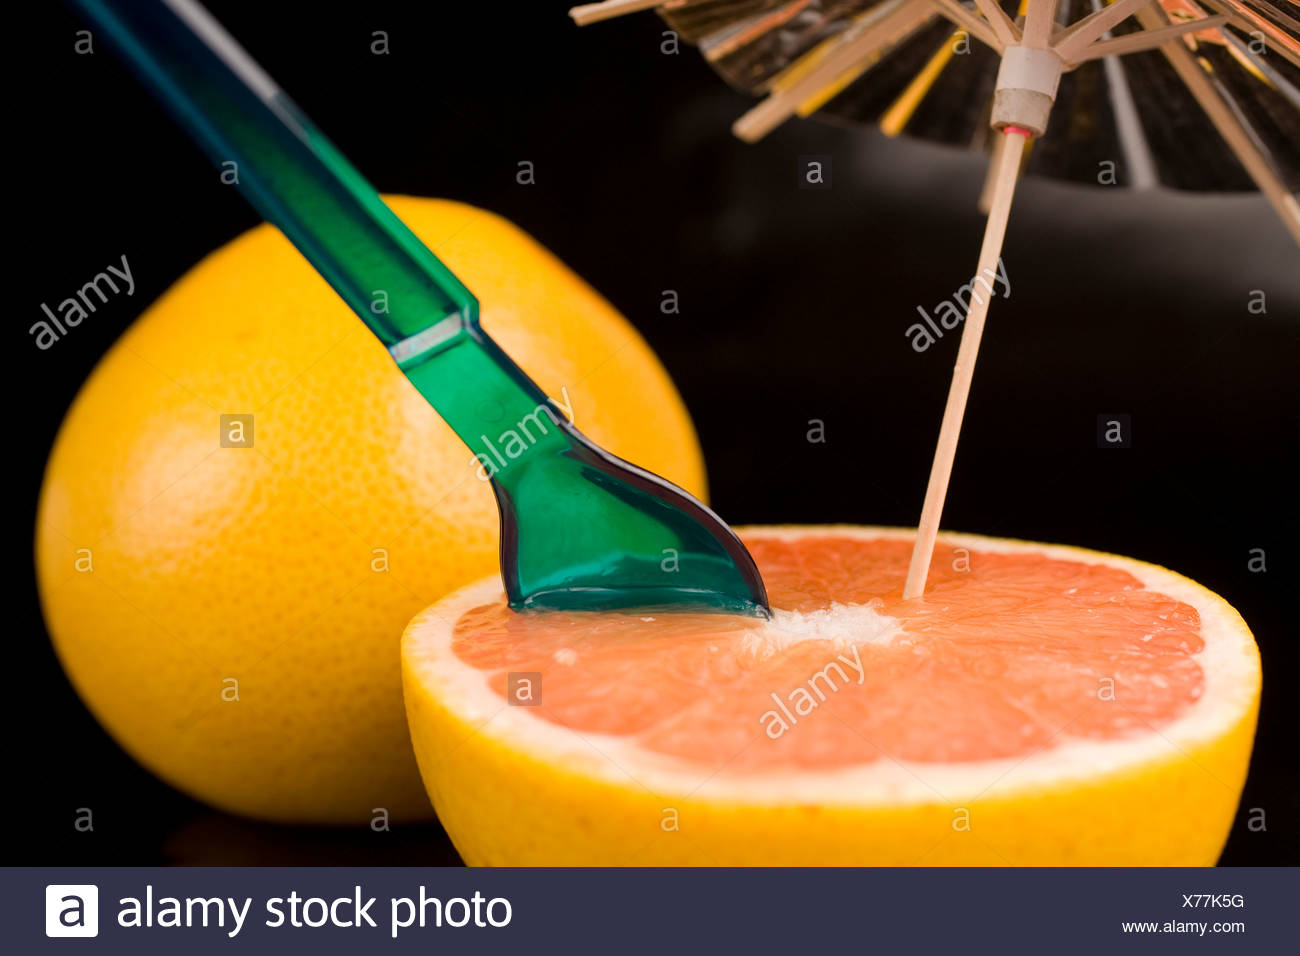 Close-up of a spoon in grapefruit slice by a whole grapefruit against dark background - Stock Image